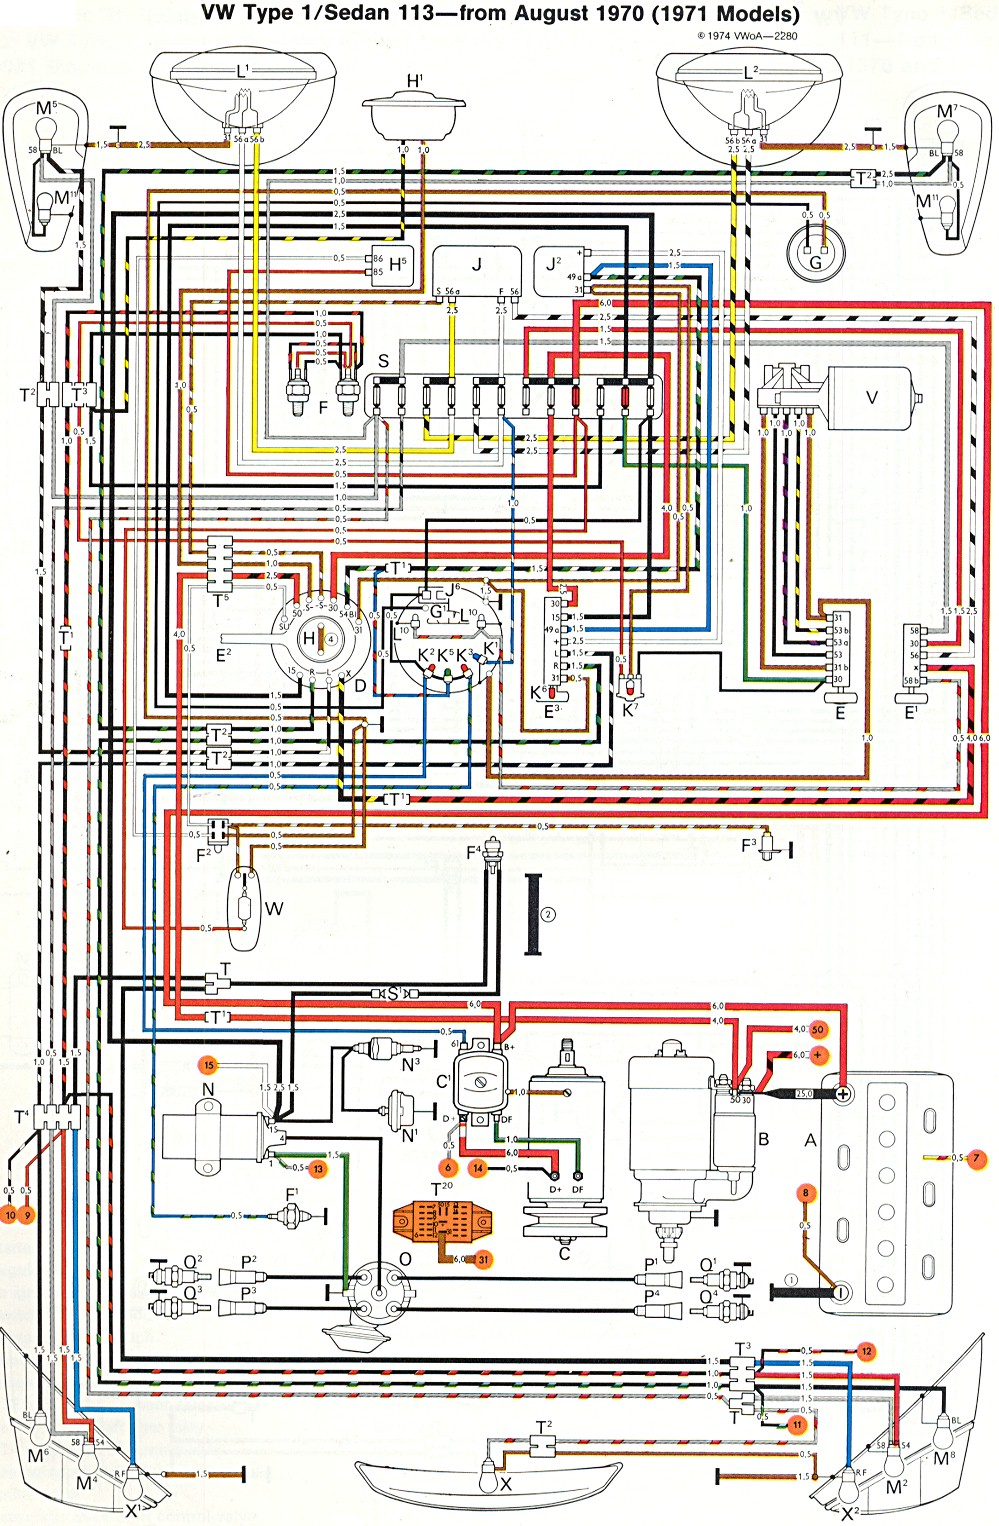 bug_super_71 2001 vw beetle wiring diagram 1964 vw beetle wiring diagram 1975 vw beetle wiring harness at edmiracle.co